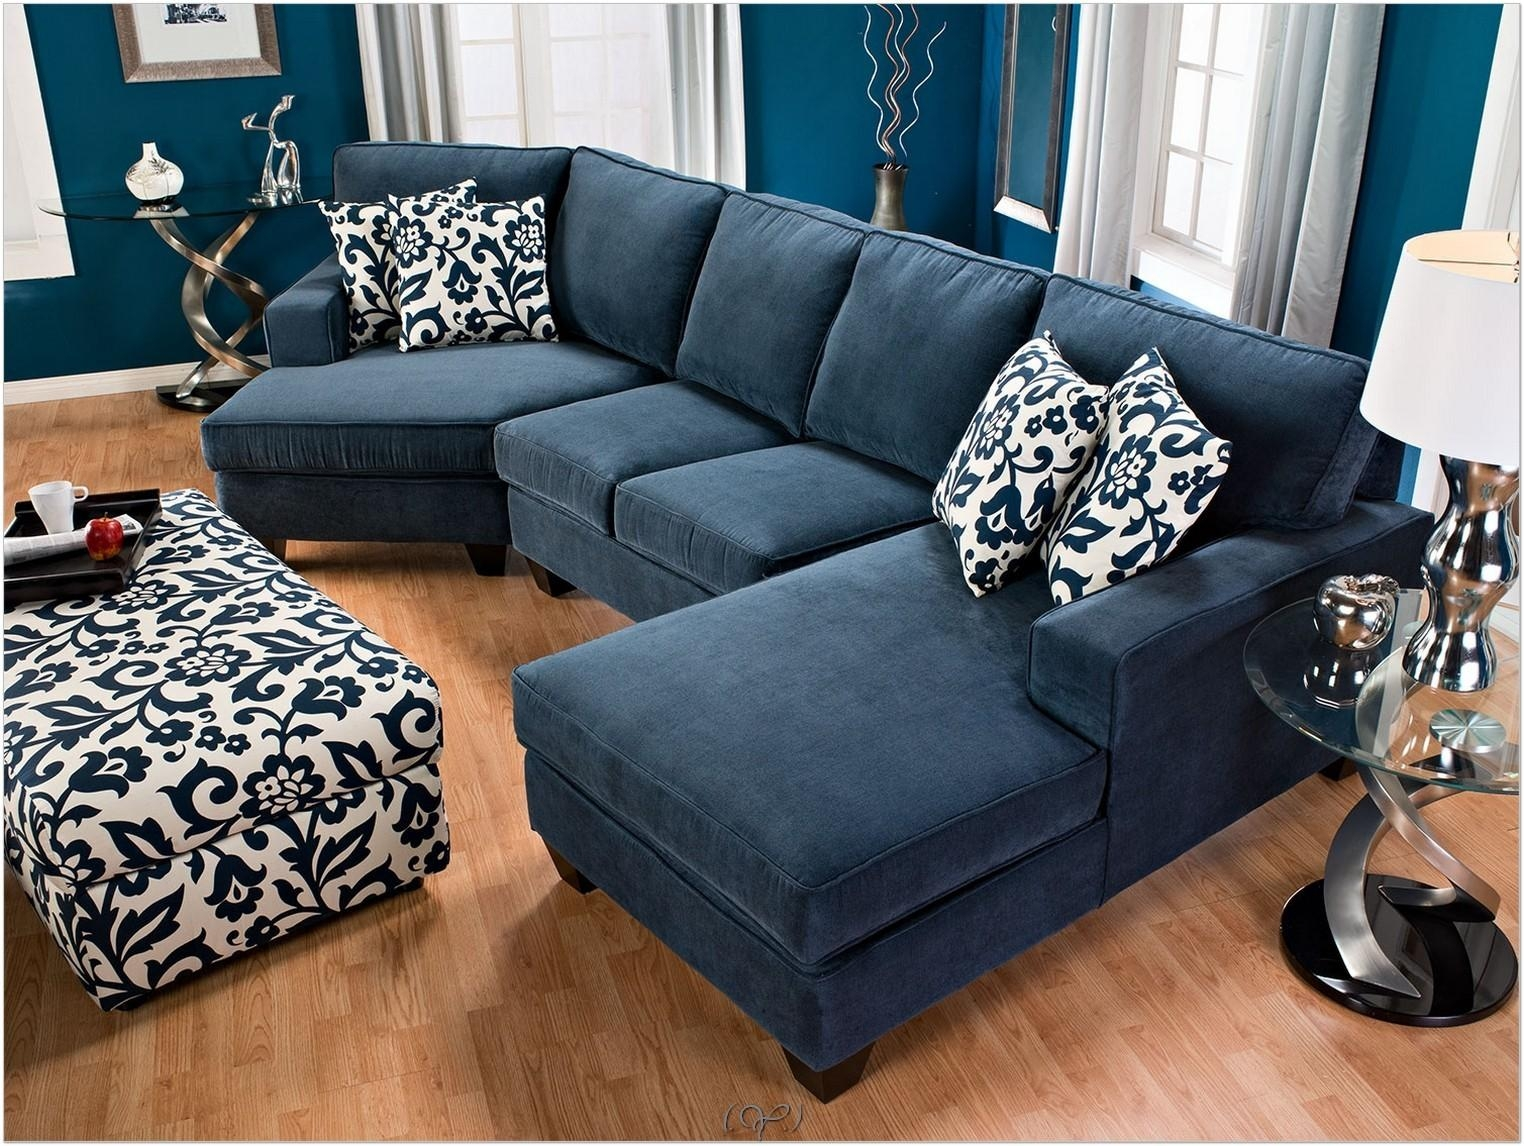 20 photos blue microfiber sofas sofa ideas. Black Bedroom Furniture Sets. Home Design Ideas